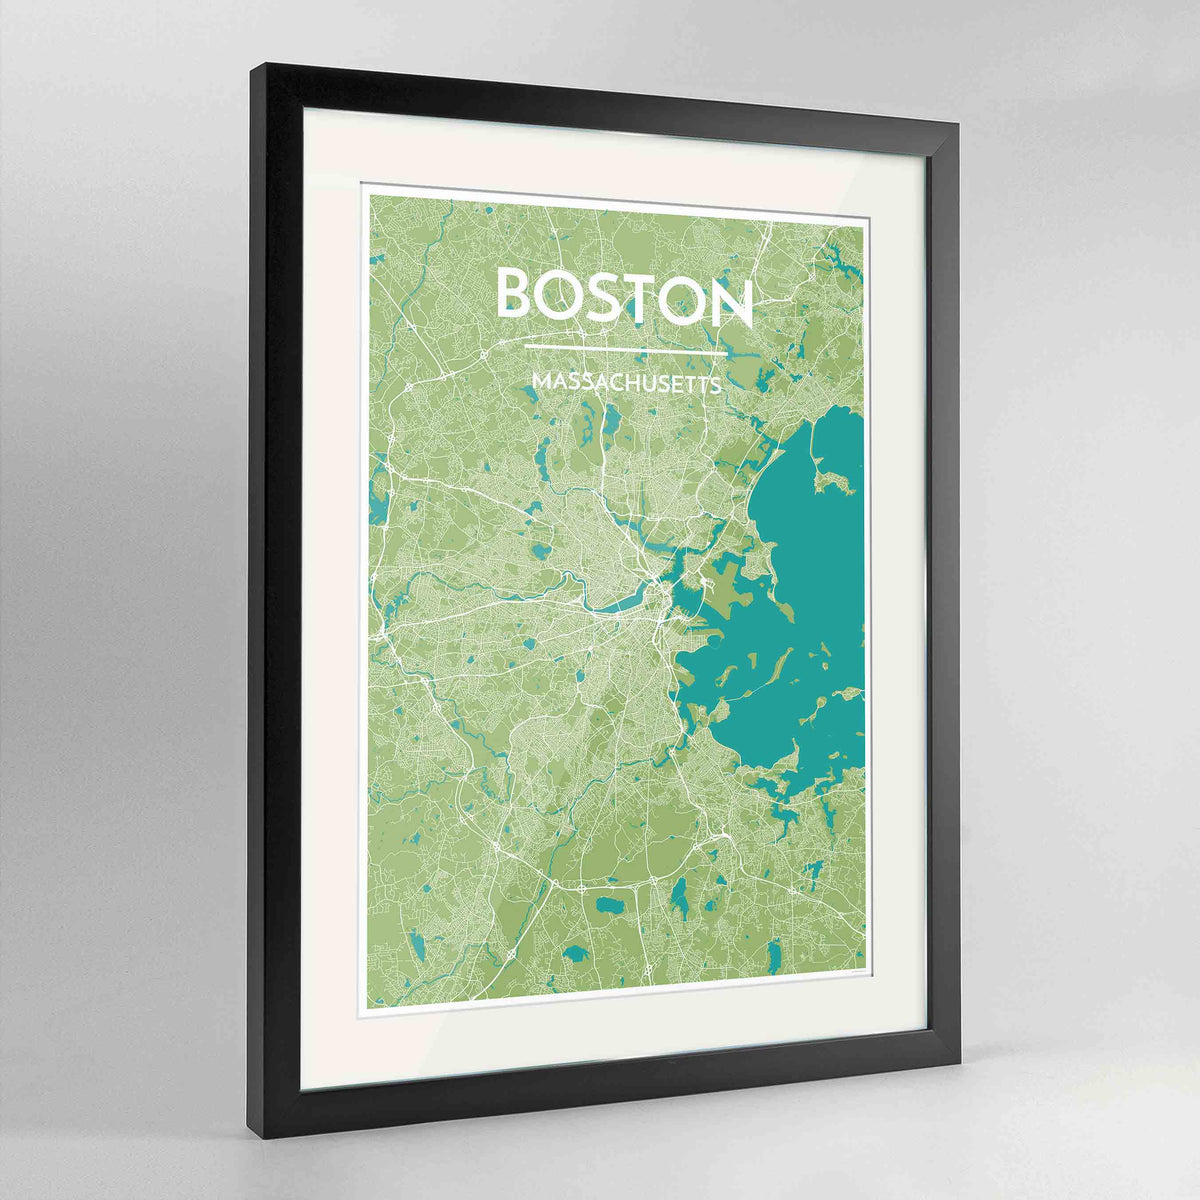 "Framed Boston Map Art Print 24x36"" Contemporary Black frame Point Two Design Group"